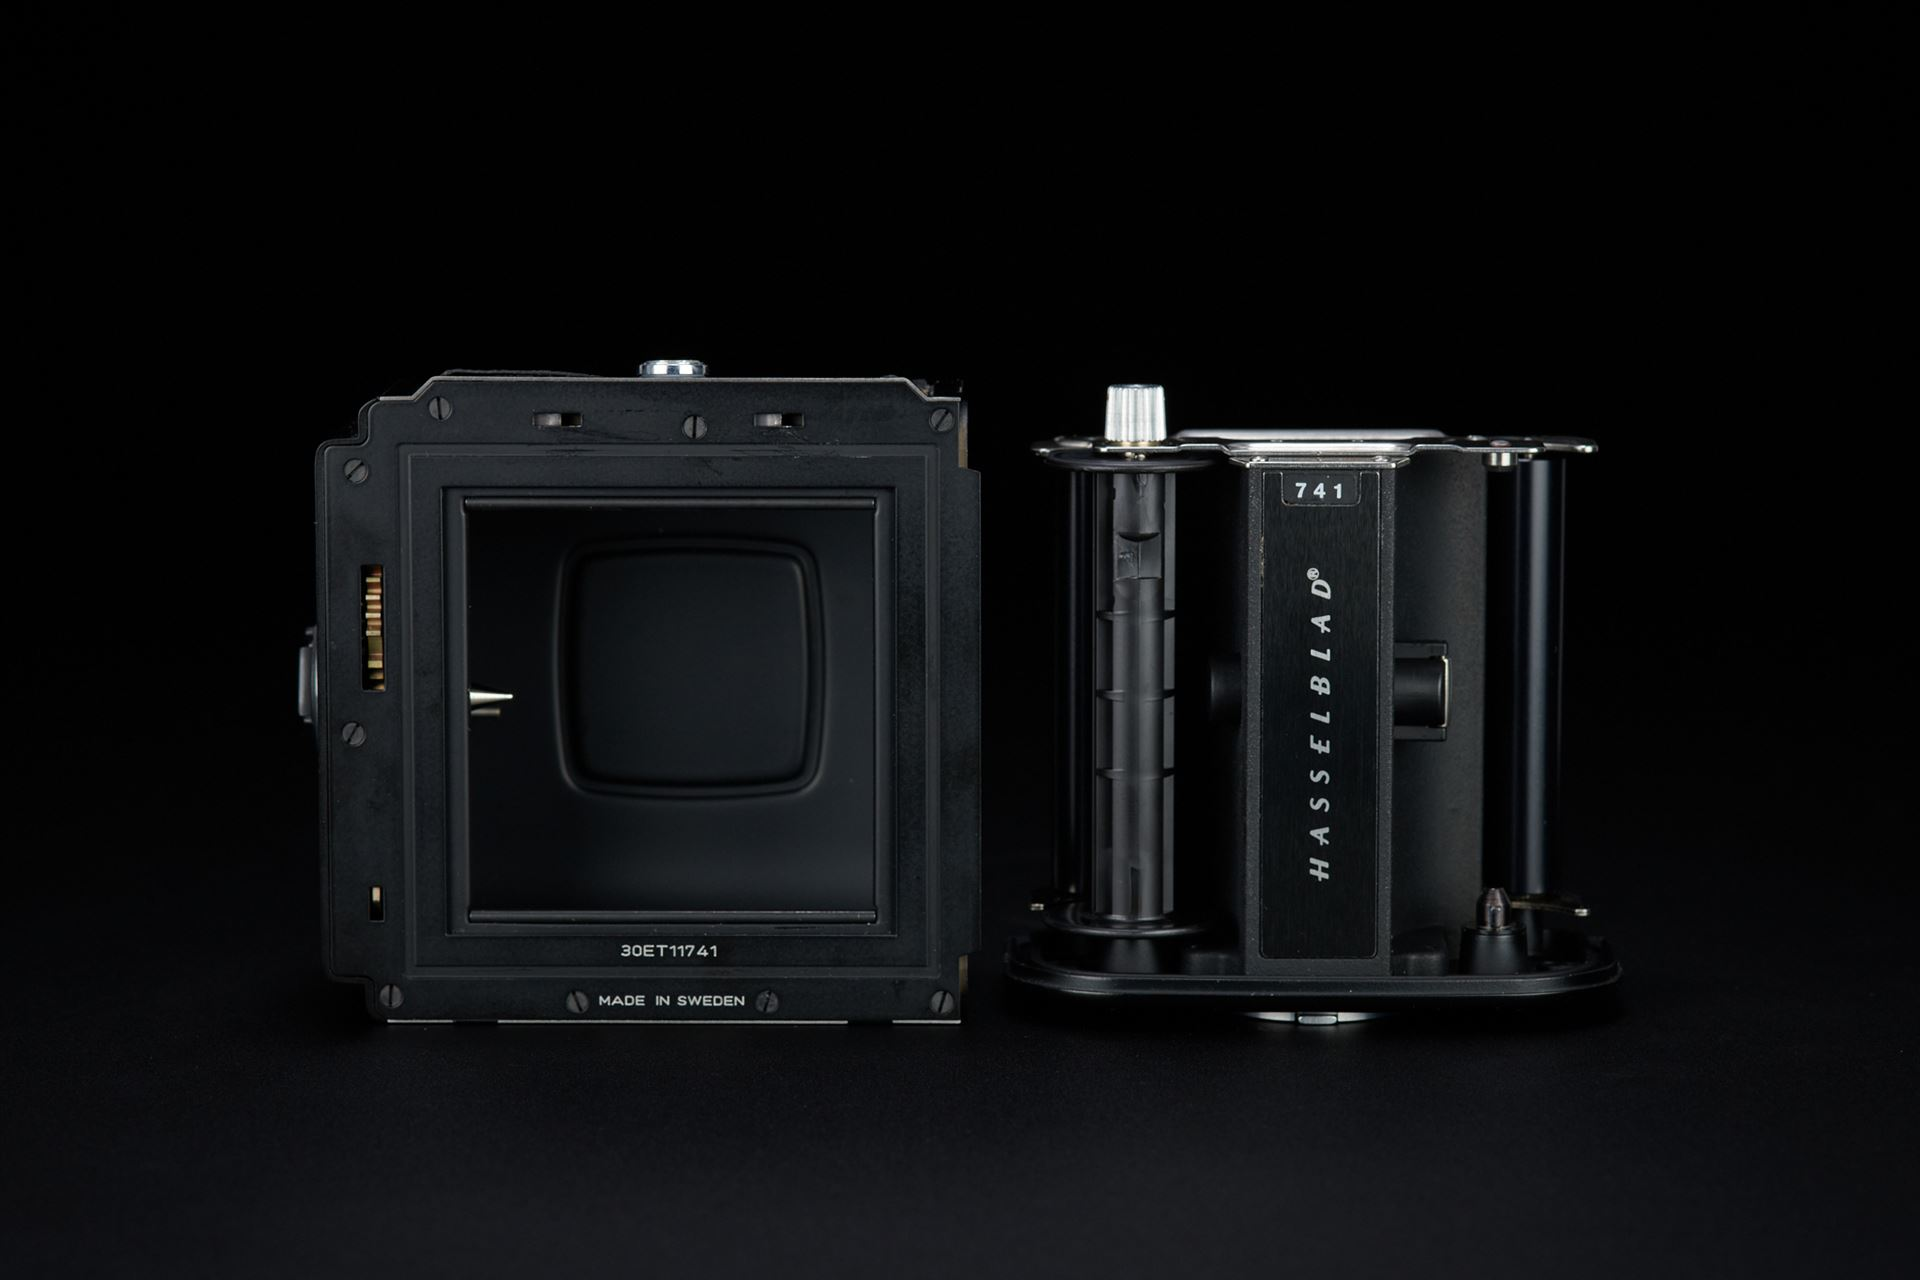 Picture of hasselblad 503 cxi w/ planar 80mm f/2.8